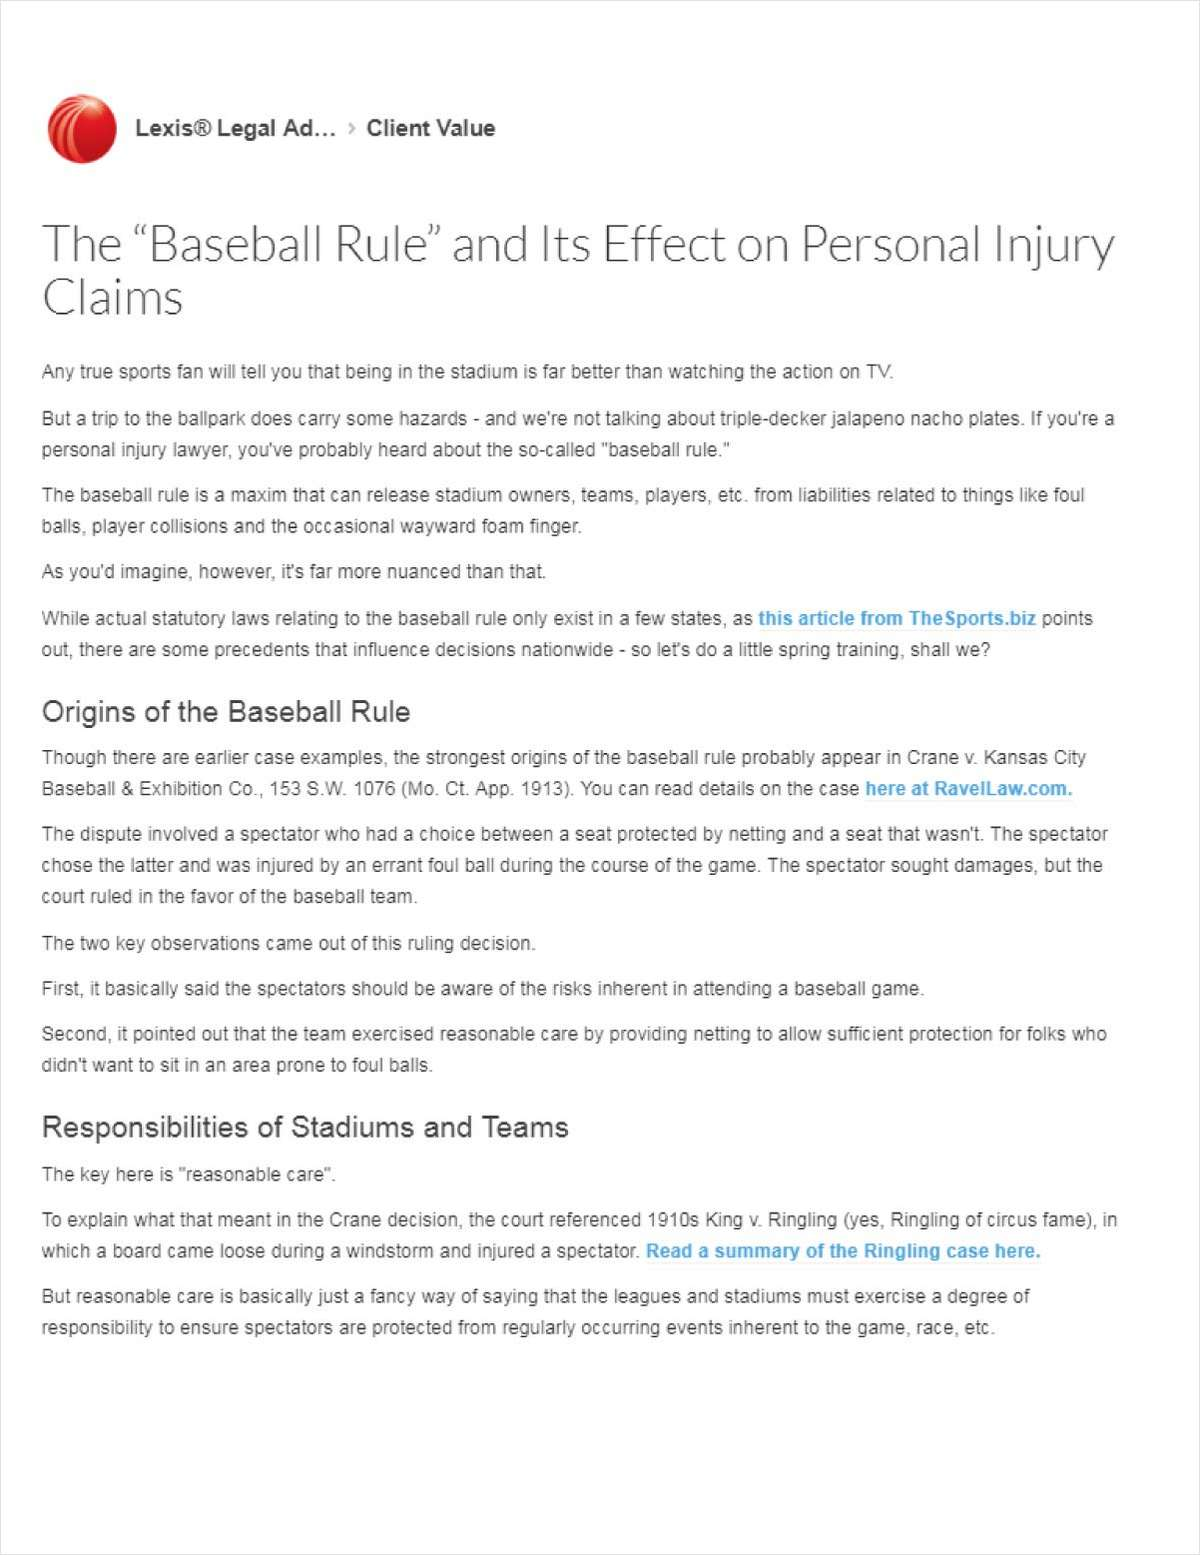 Modern Day Nuances of The 'Baseball Rule' and Its Effect on Personal Injury Claims